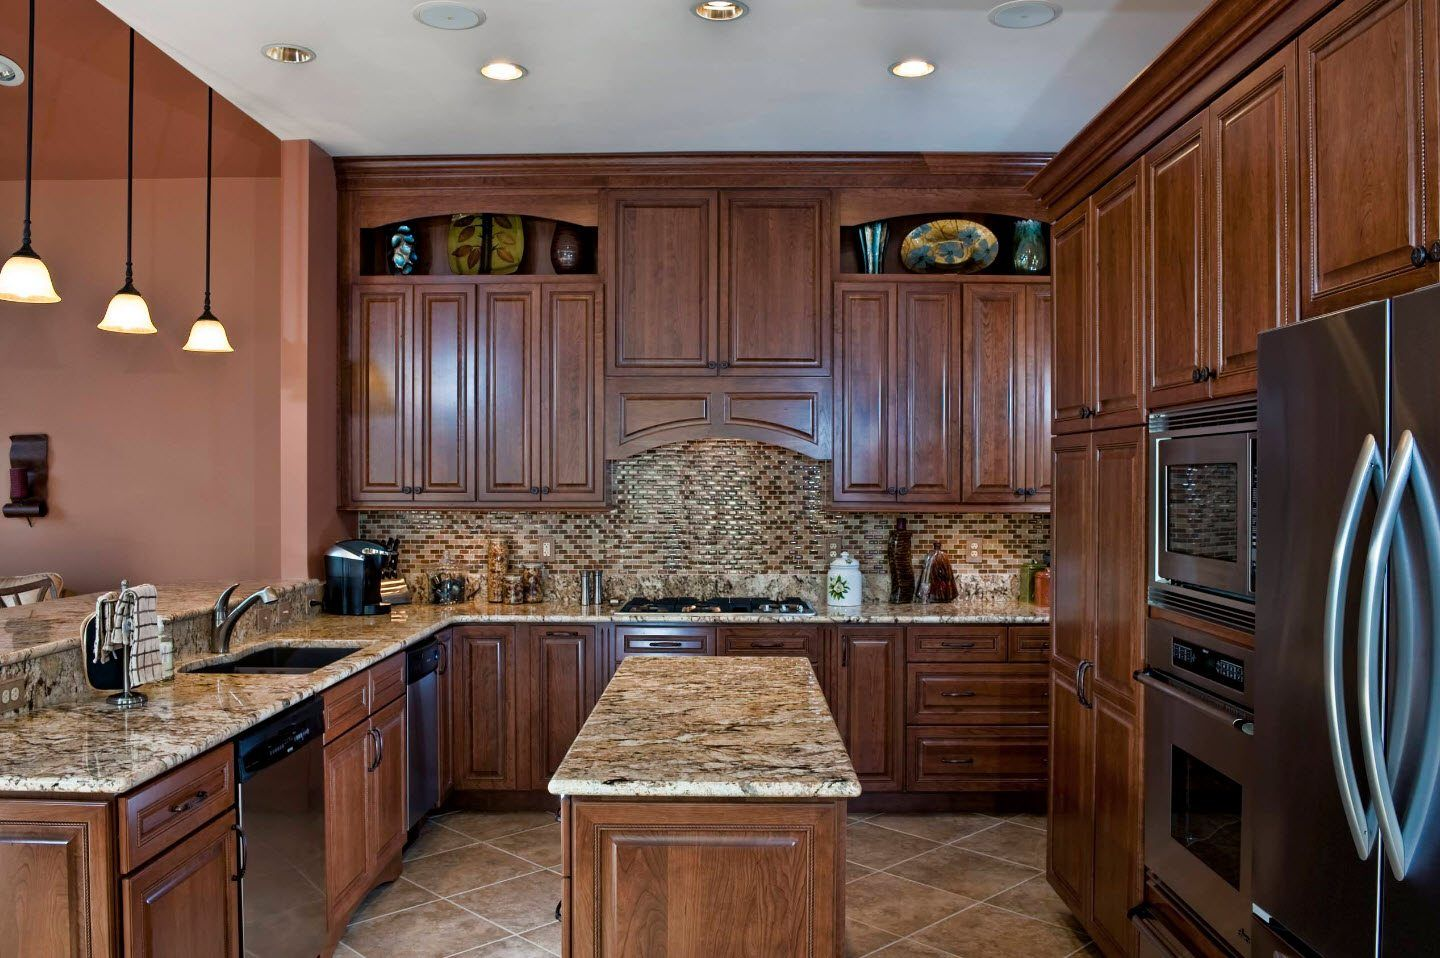 170 Square Feet Kitchen Design Ideas with Photos. Noble carved and embossed oak kitchen fronts and marble topped counters